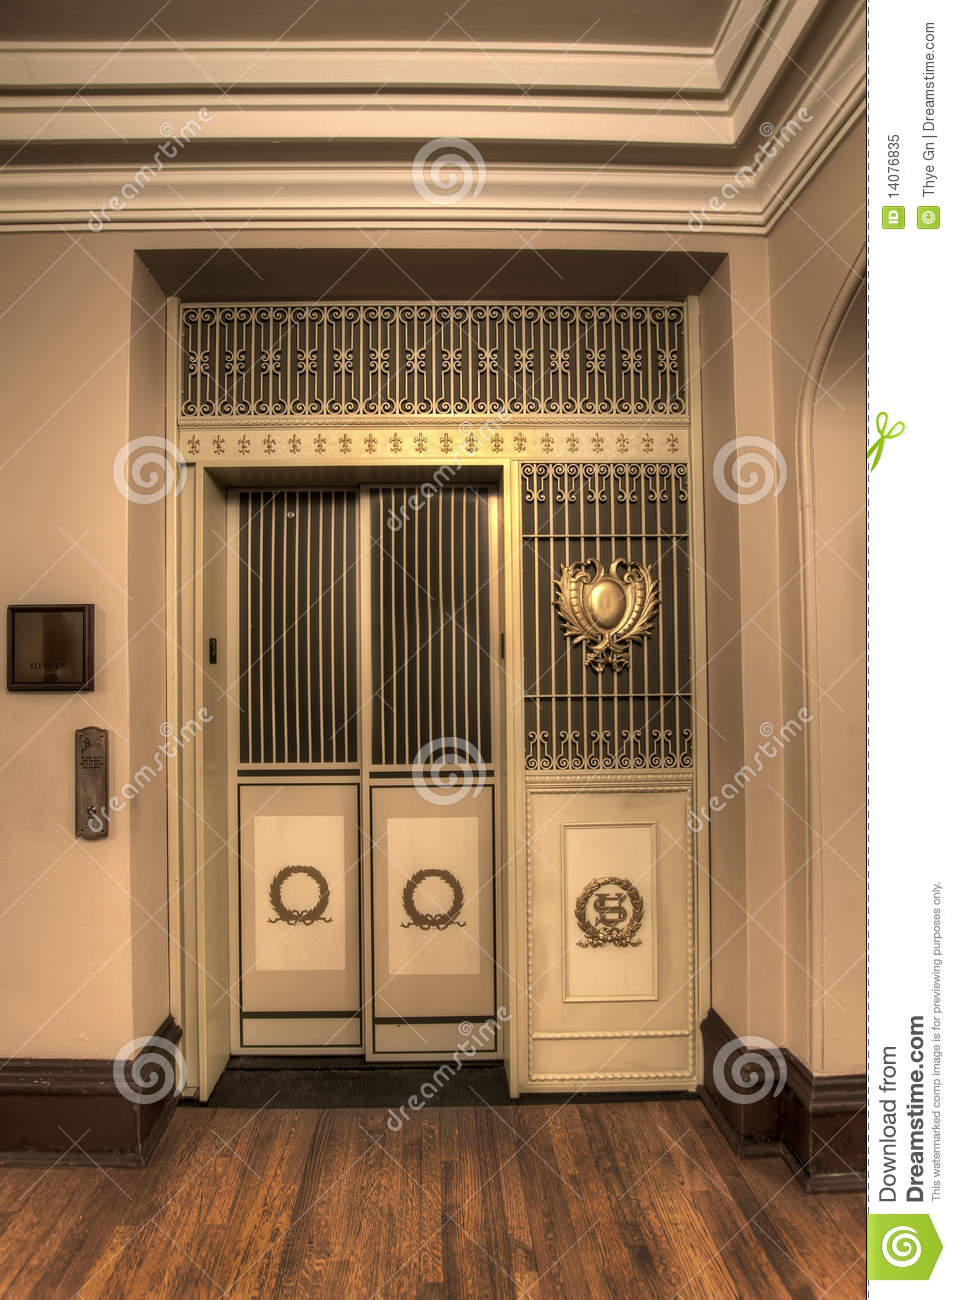 Old antique elevator royalty free stock photo image for Ascenseur maison